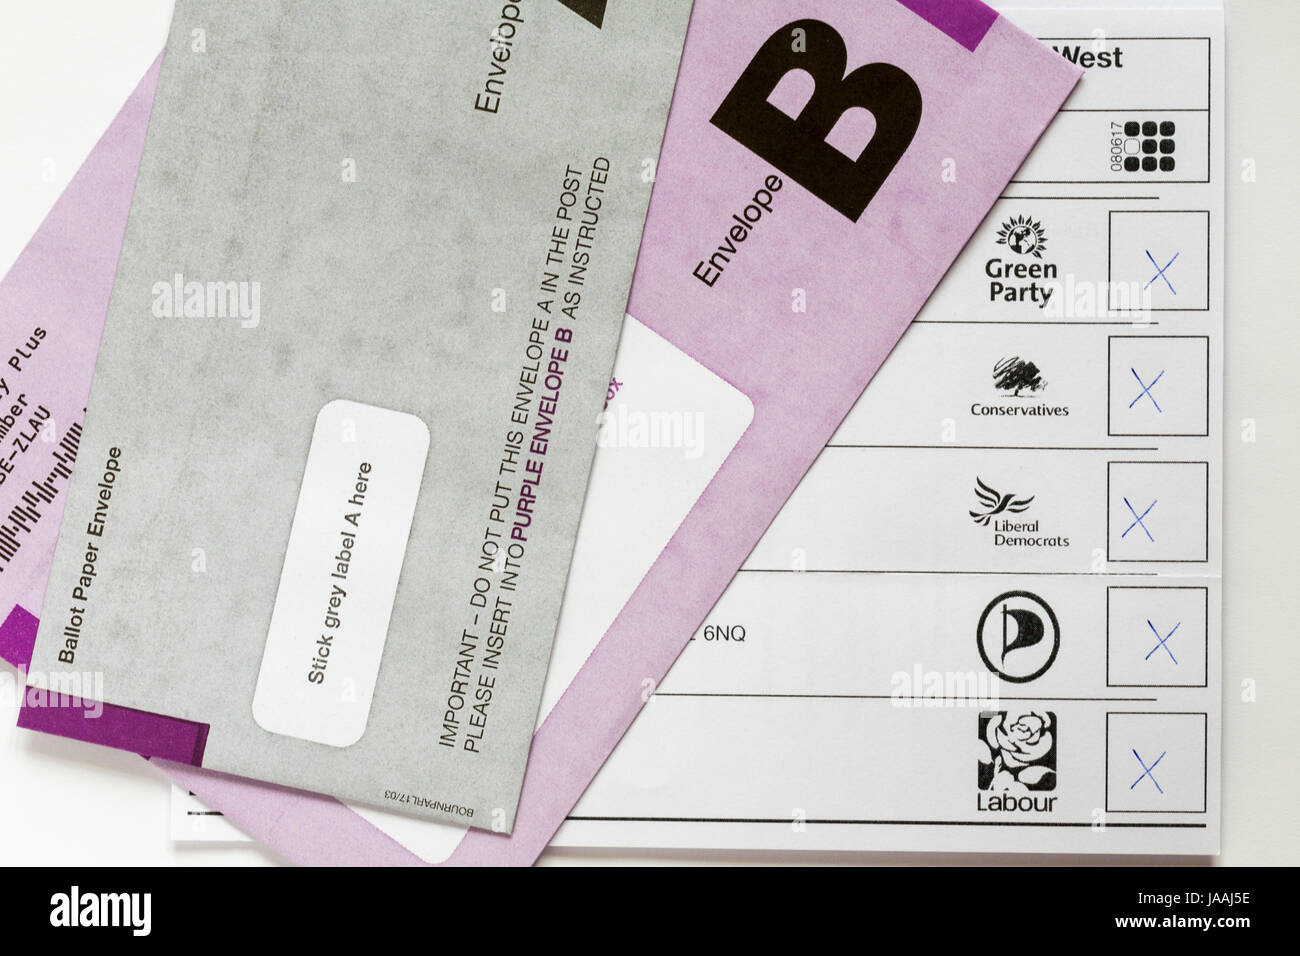 Spoilt Ballot Paper for Postal Ballot Paper for General Election in the UK on Thursday 8th June 2017 - with X put - Stock Image